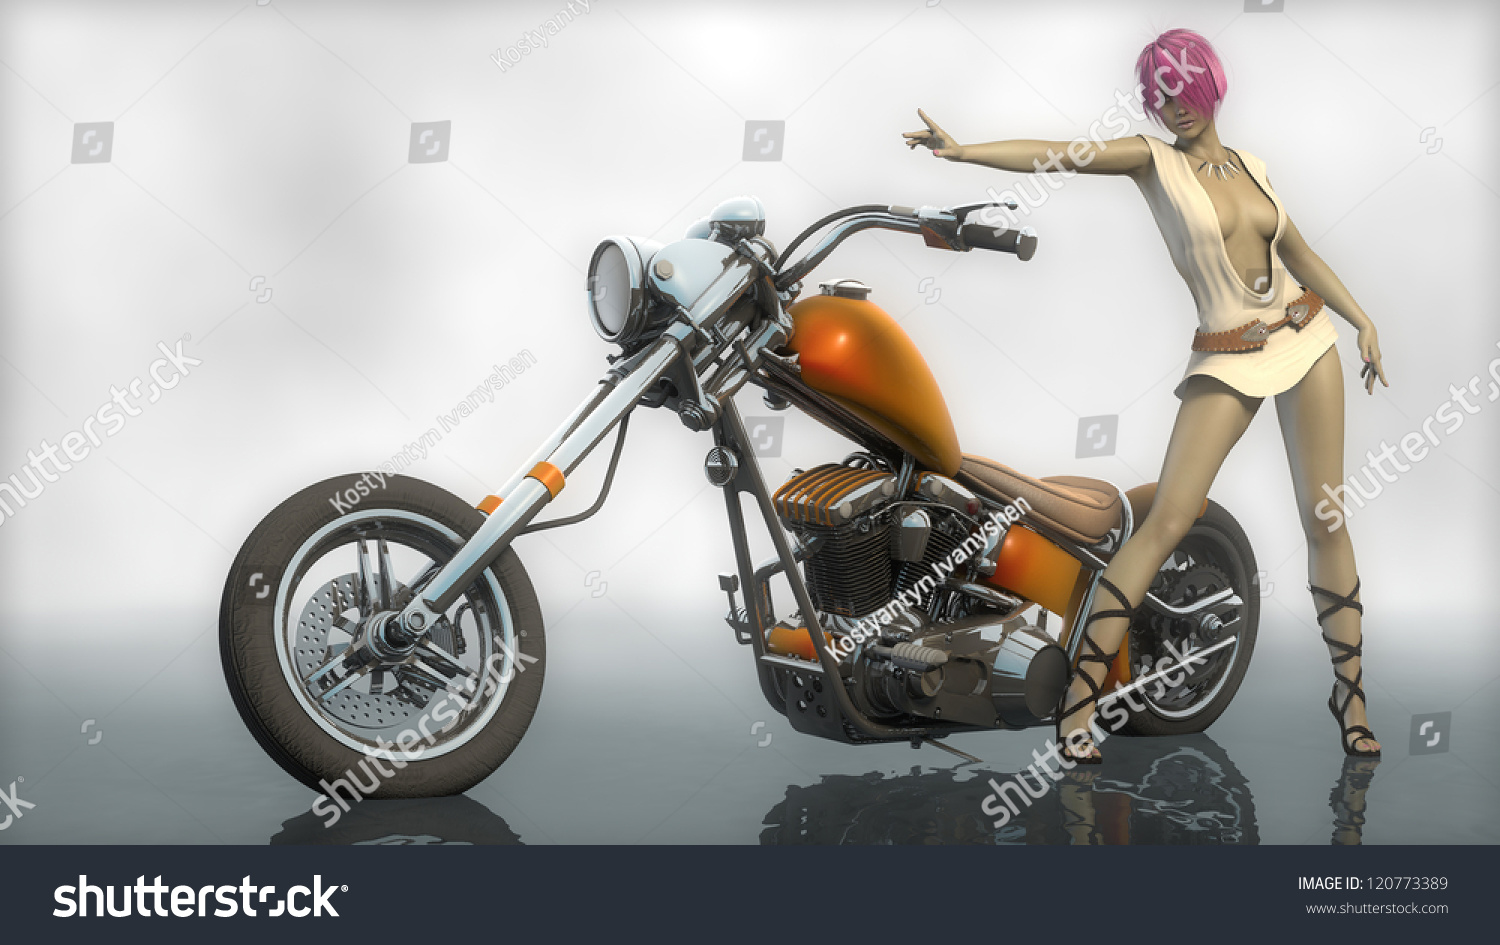 Think, Custom chopper motorcycles and girls manage somehow